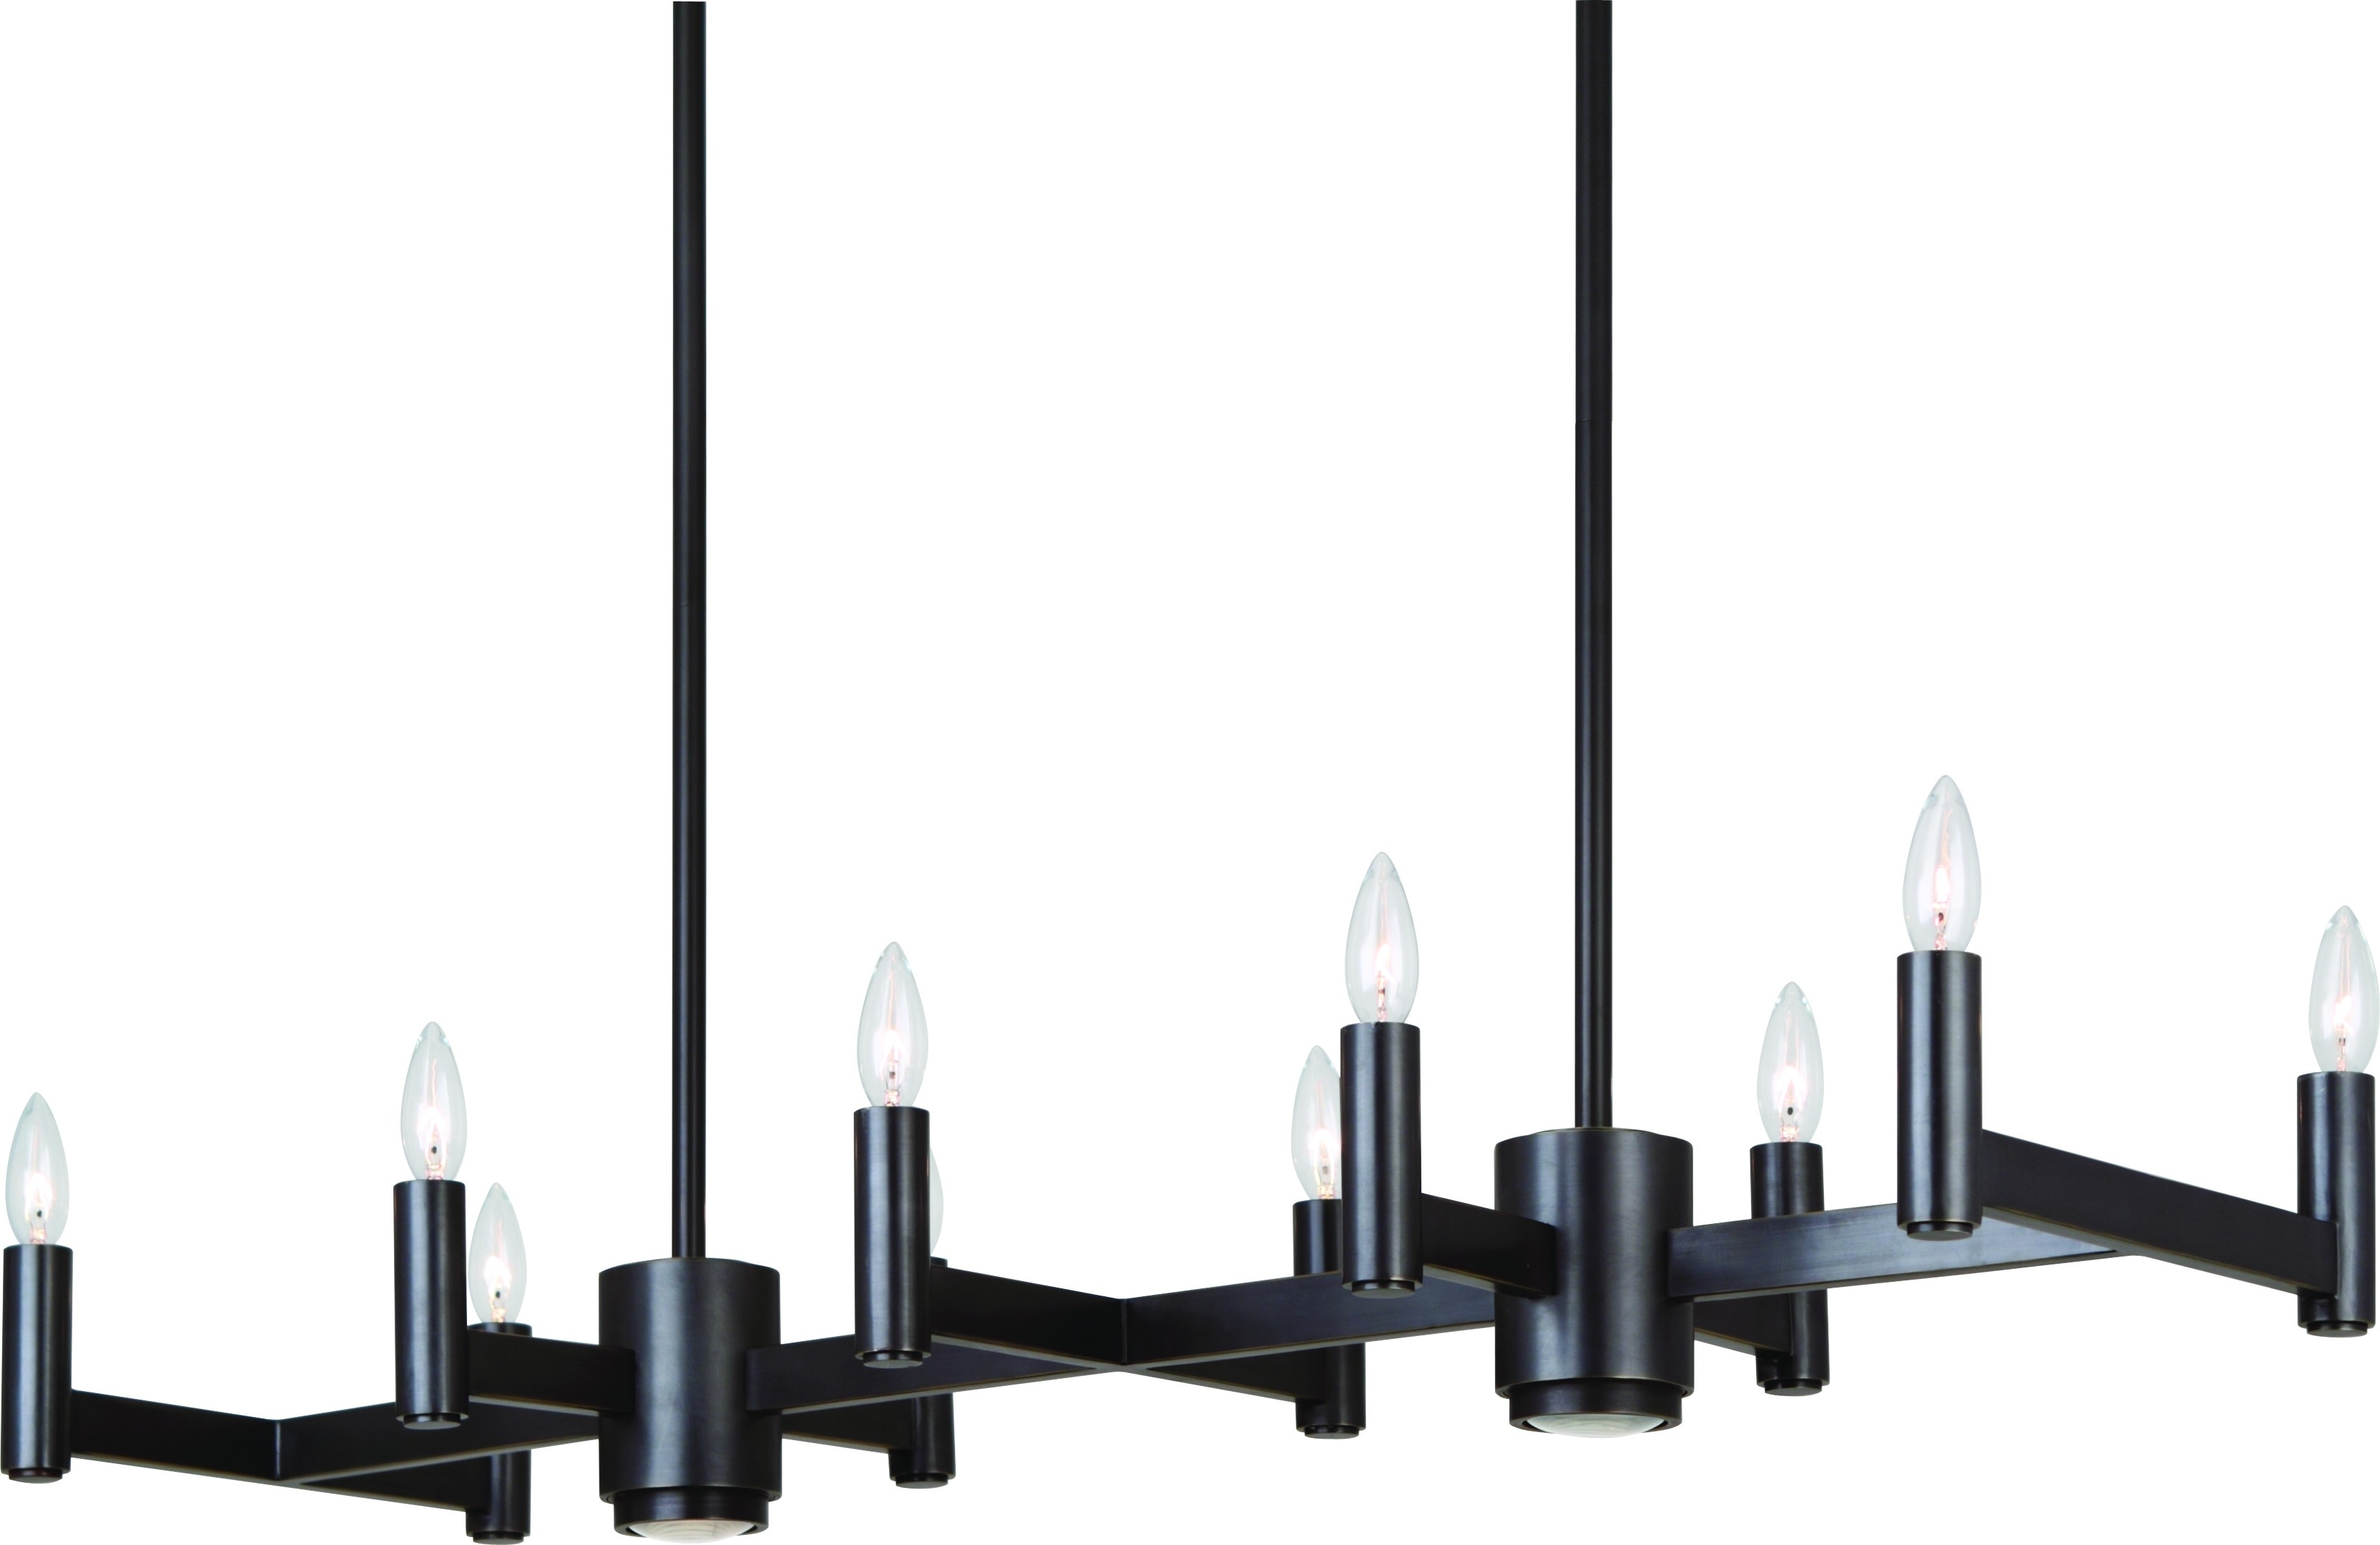 Most Recently Released Hanging Rectangular Modern Black Wrought Iron Chandeliers With Lamp Regarding Modern Wrought Iron Chandeliers (View 12 of 15)